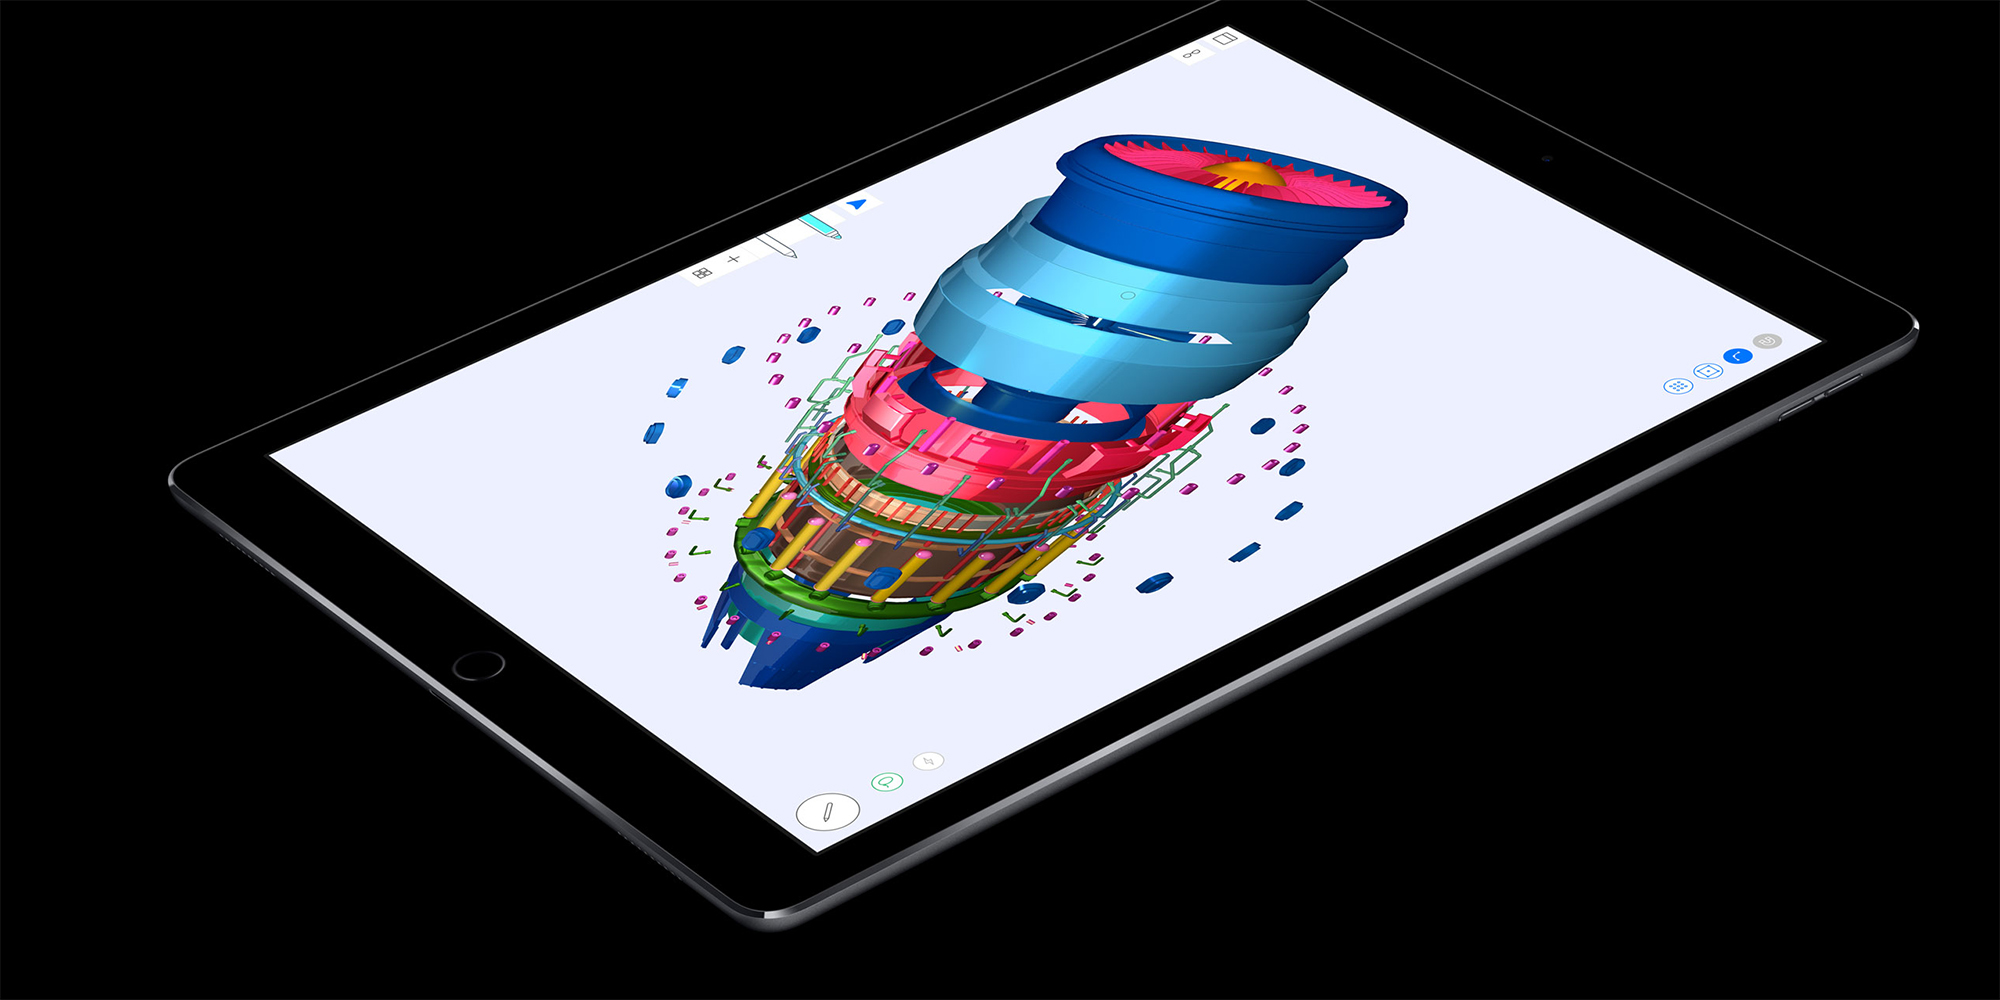 Take up to $430 off Apple's 10.5-inch iPad Pro today only at Amazon and Best Buy